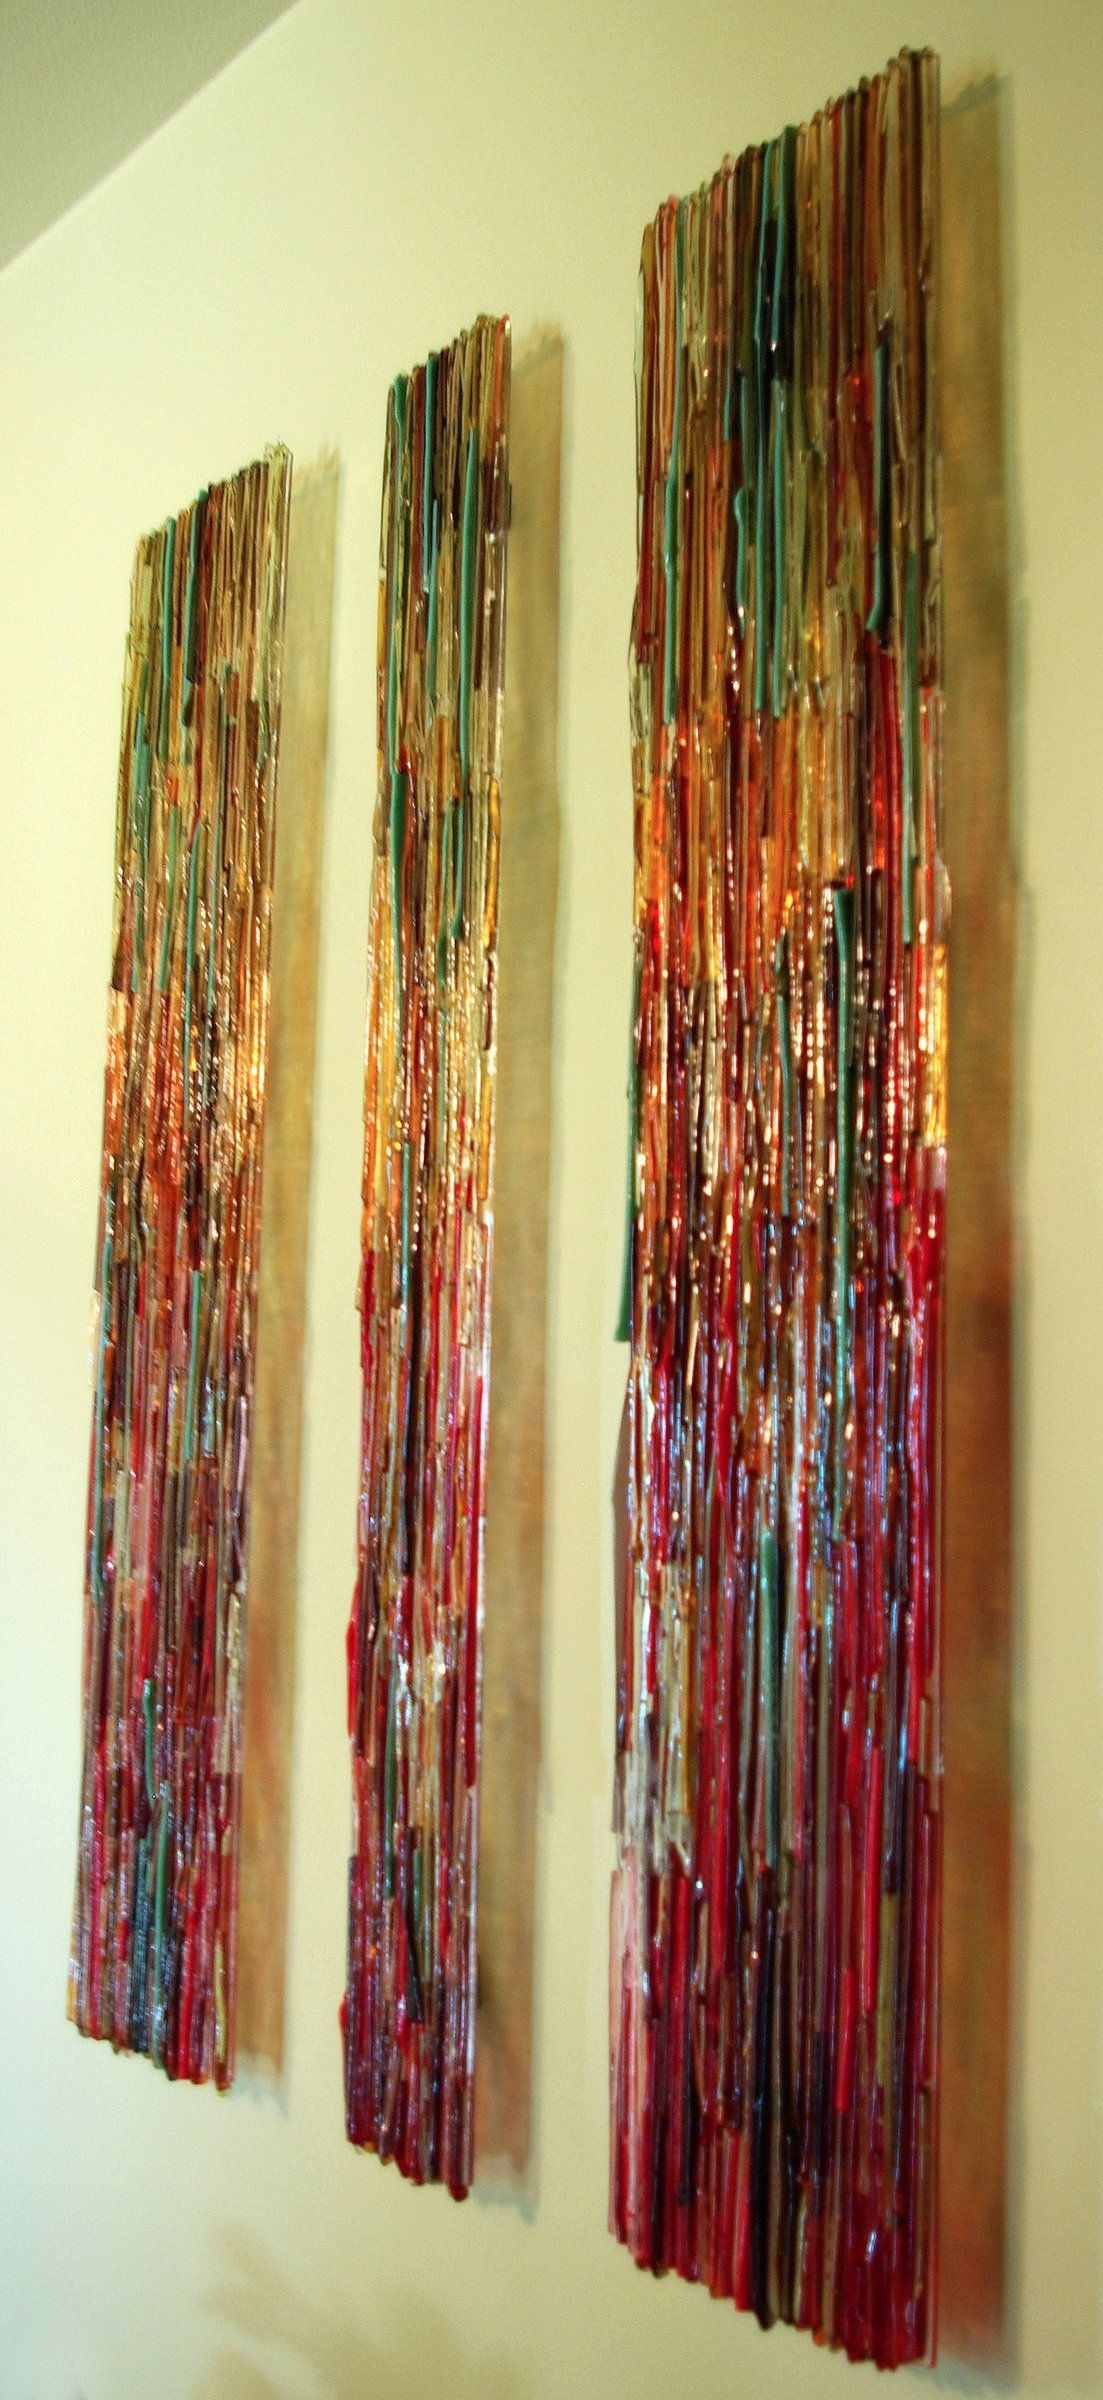 Transpire Wall Panels: Sarinda Jones: Art Glass Wall Art – Artful In Best And Newest Wall Art Panels (View 17 of 20)